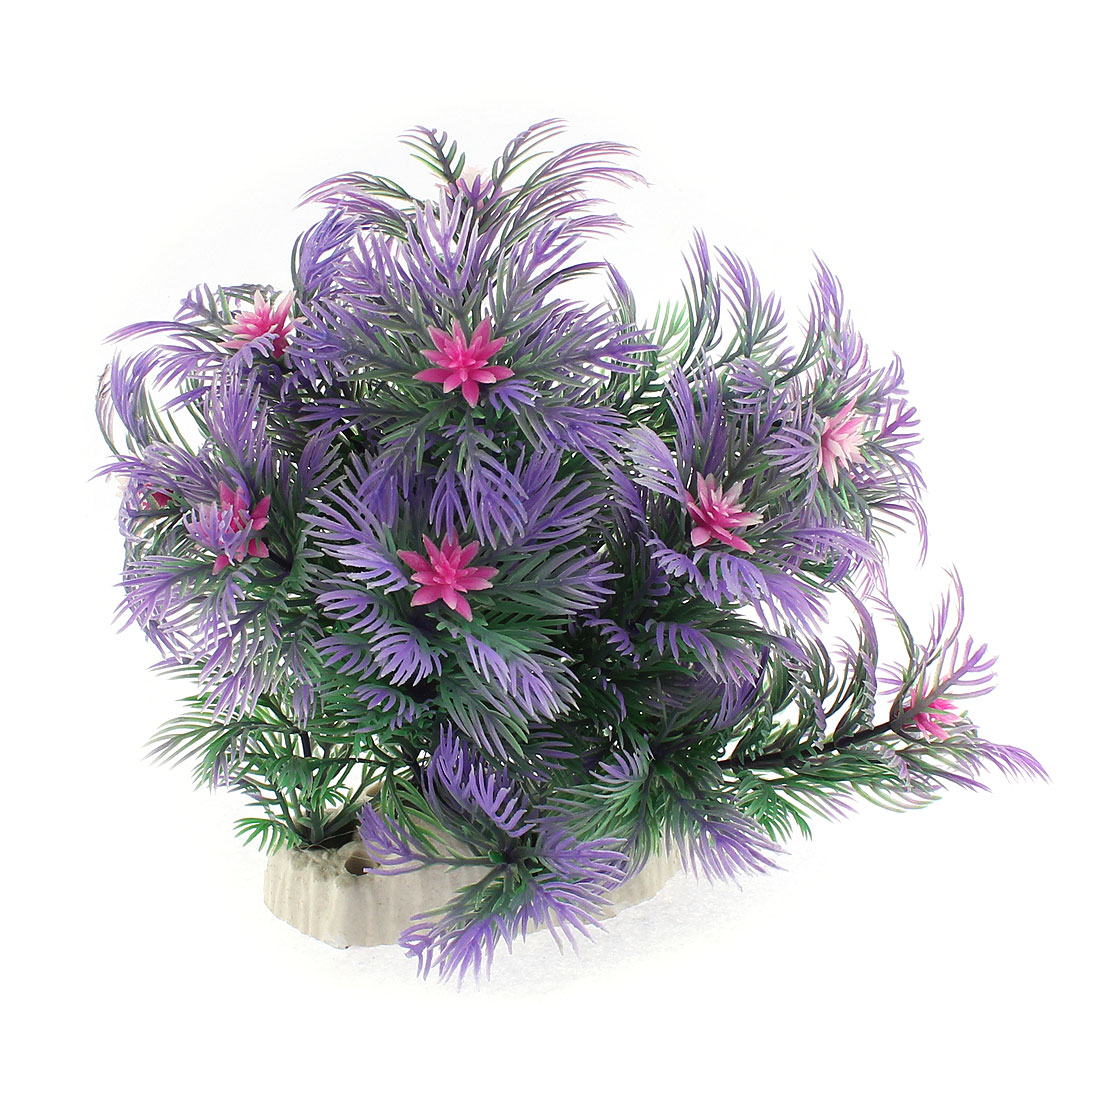 Aquarium Plastic Emulational Aquatic Flower Plant Decor Green Purple